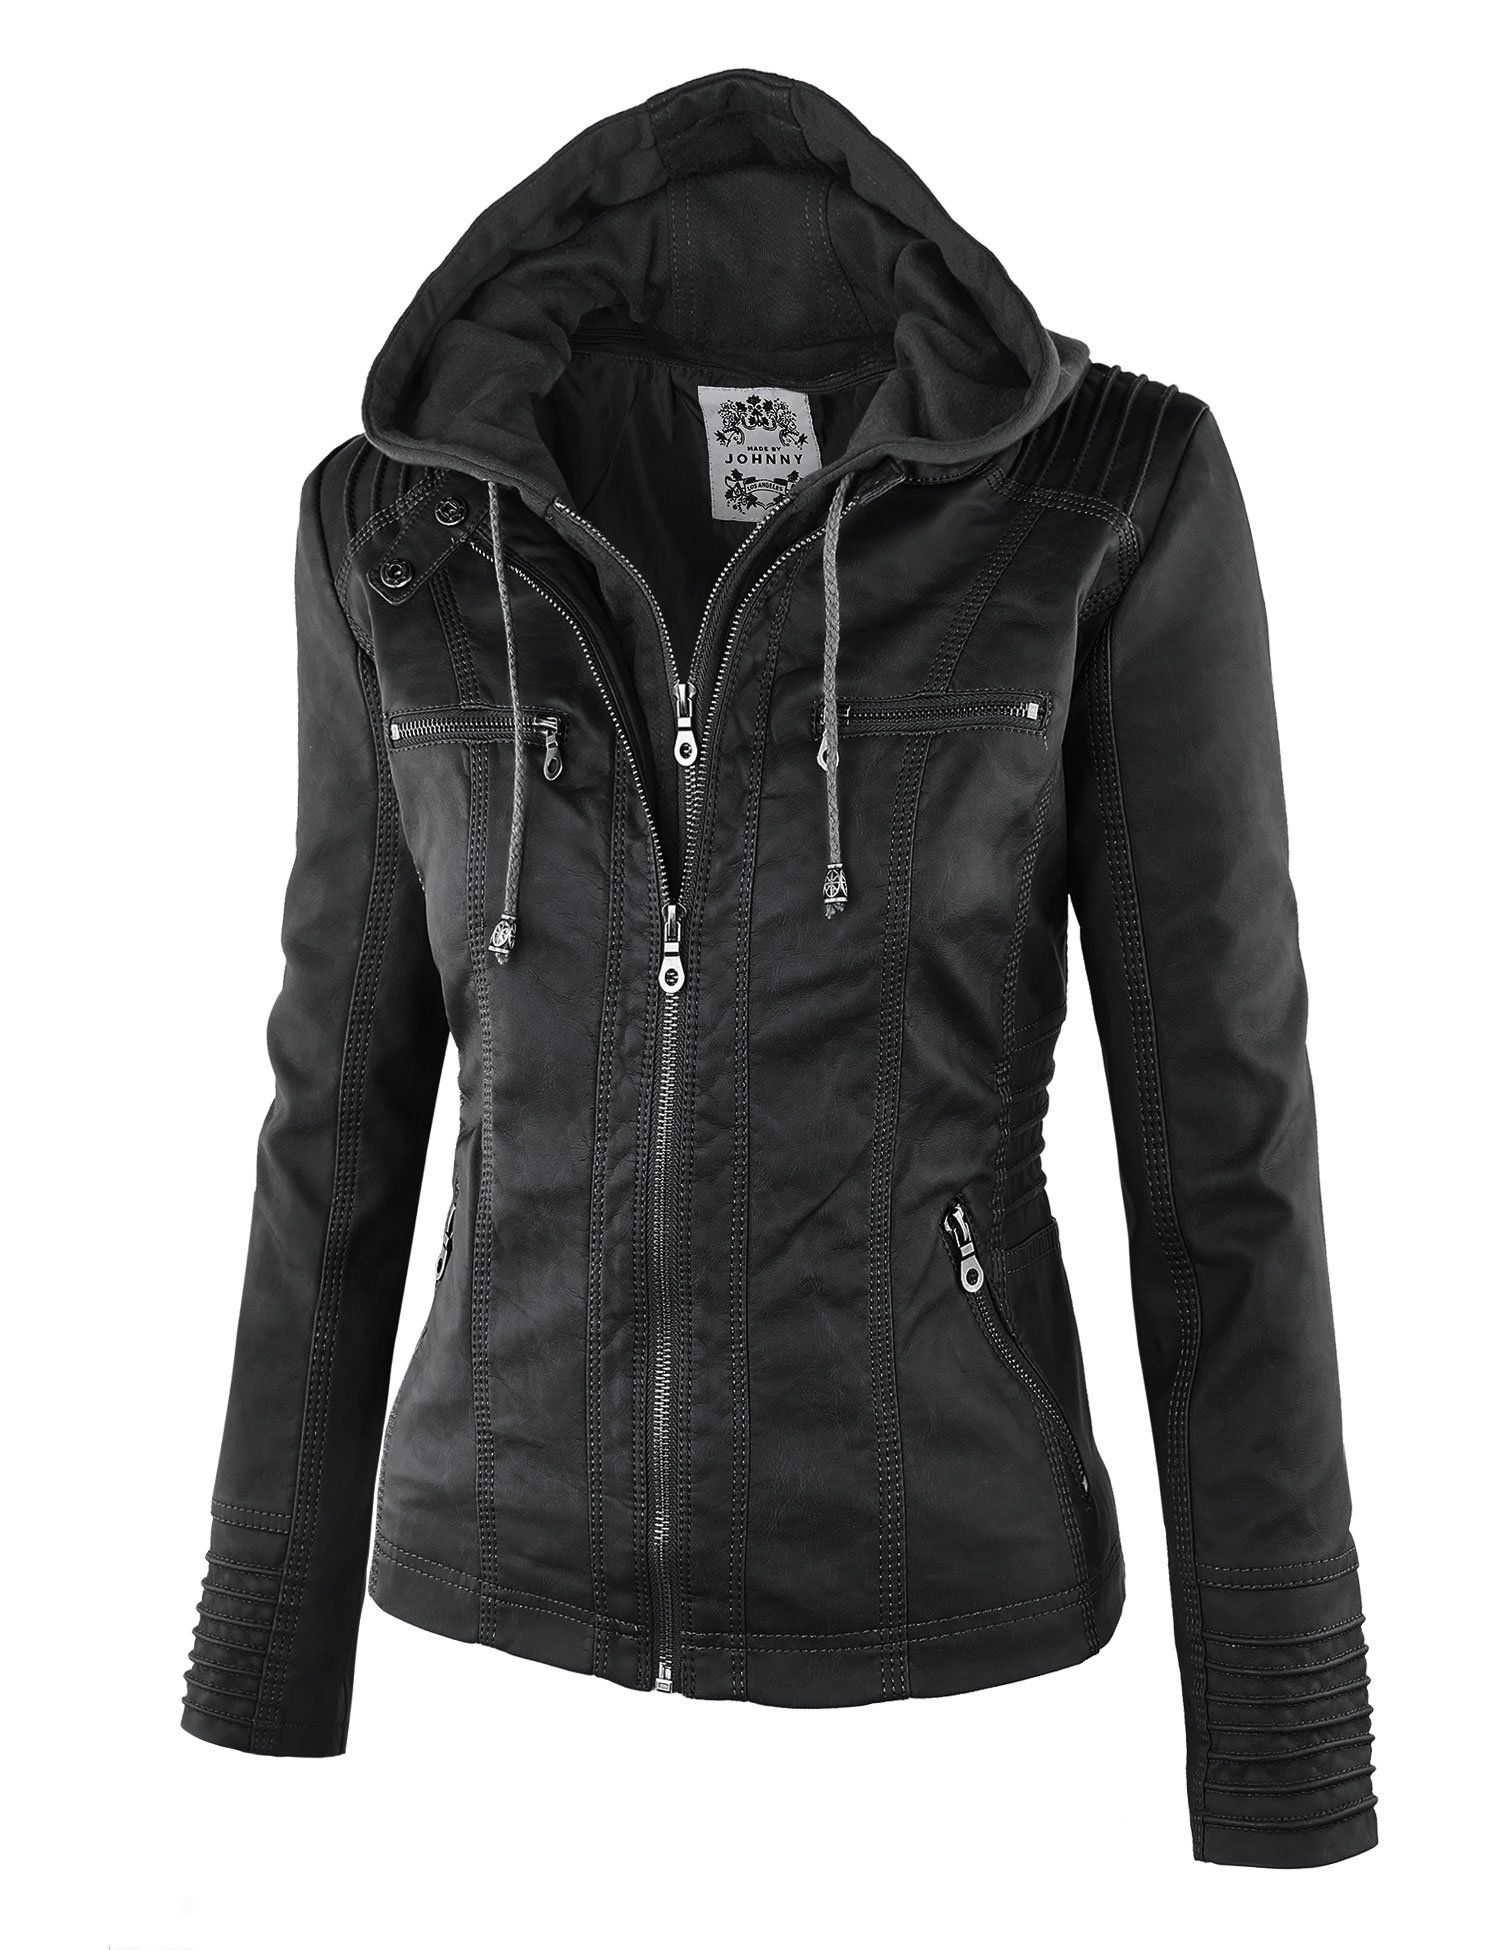 LL Womens 2ForOne Hooded Faux leather Jacket at Amazon